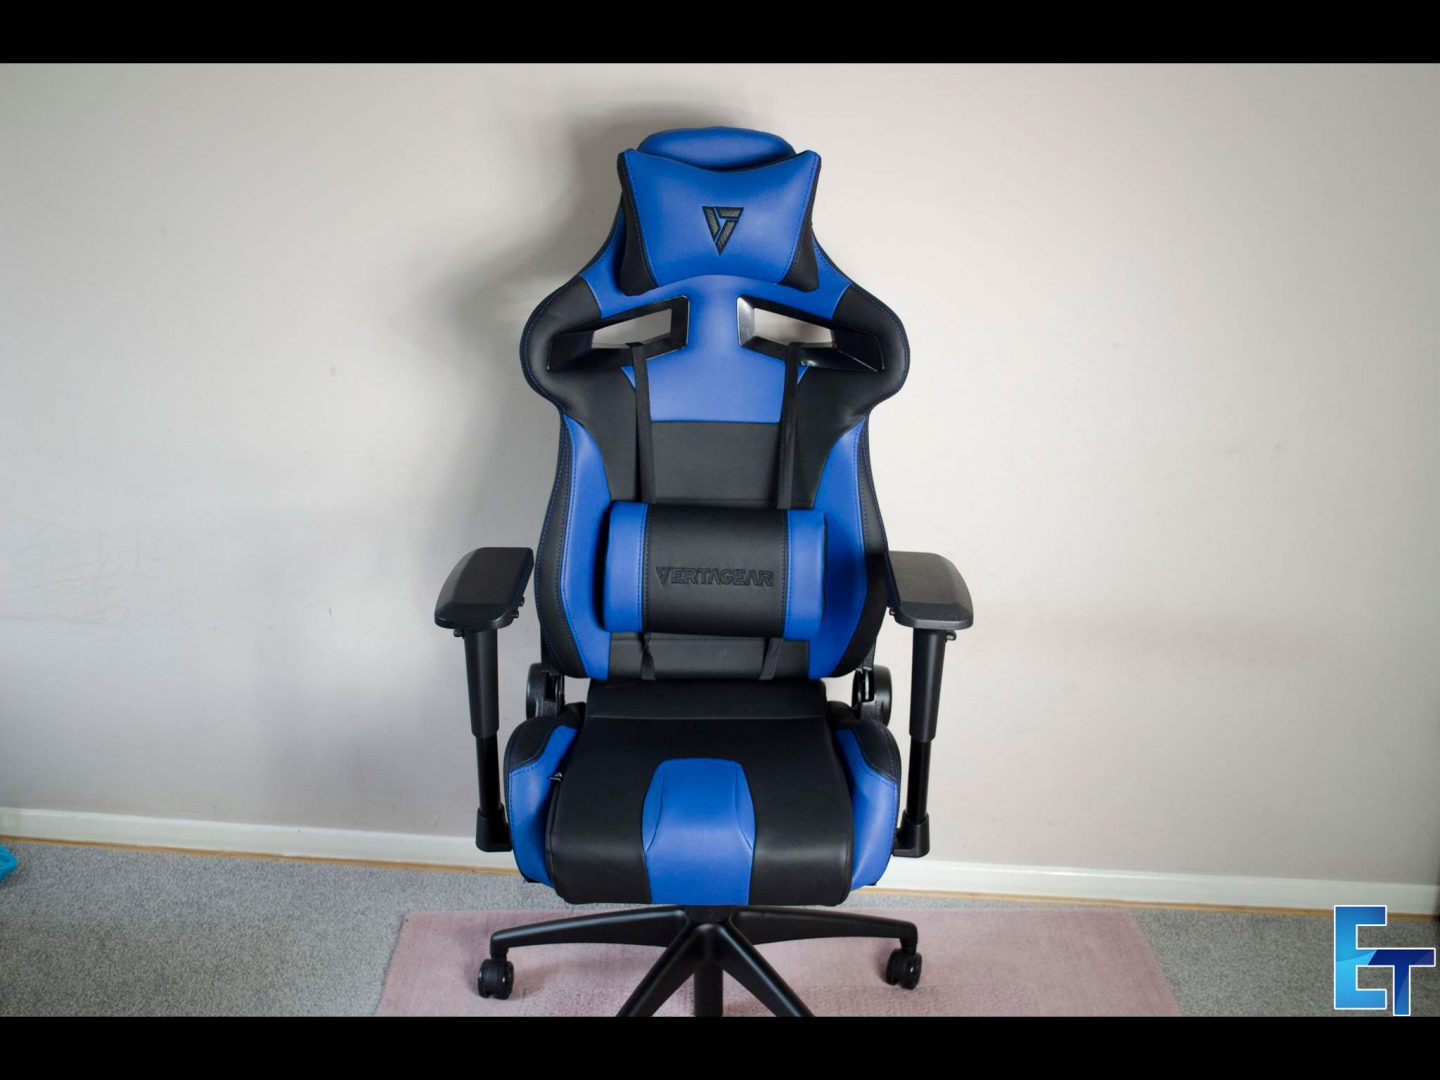 Vertagear-SL4000-Gaming-Chari-Review_1